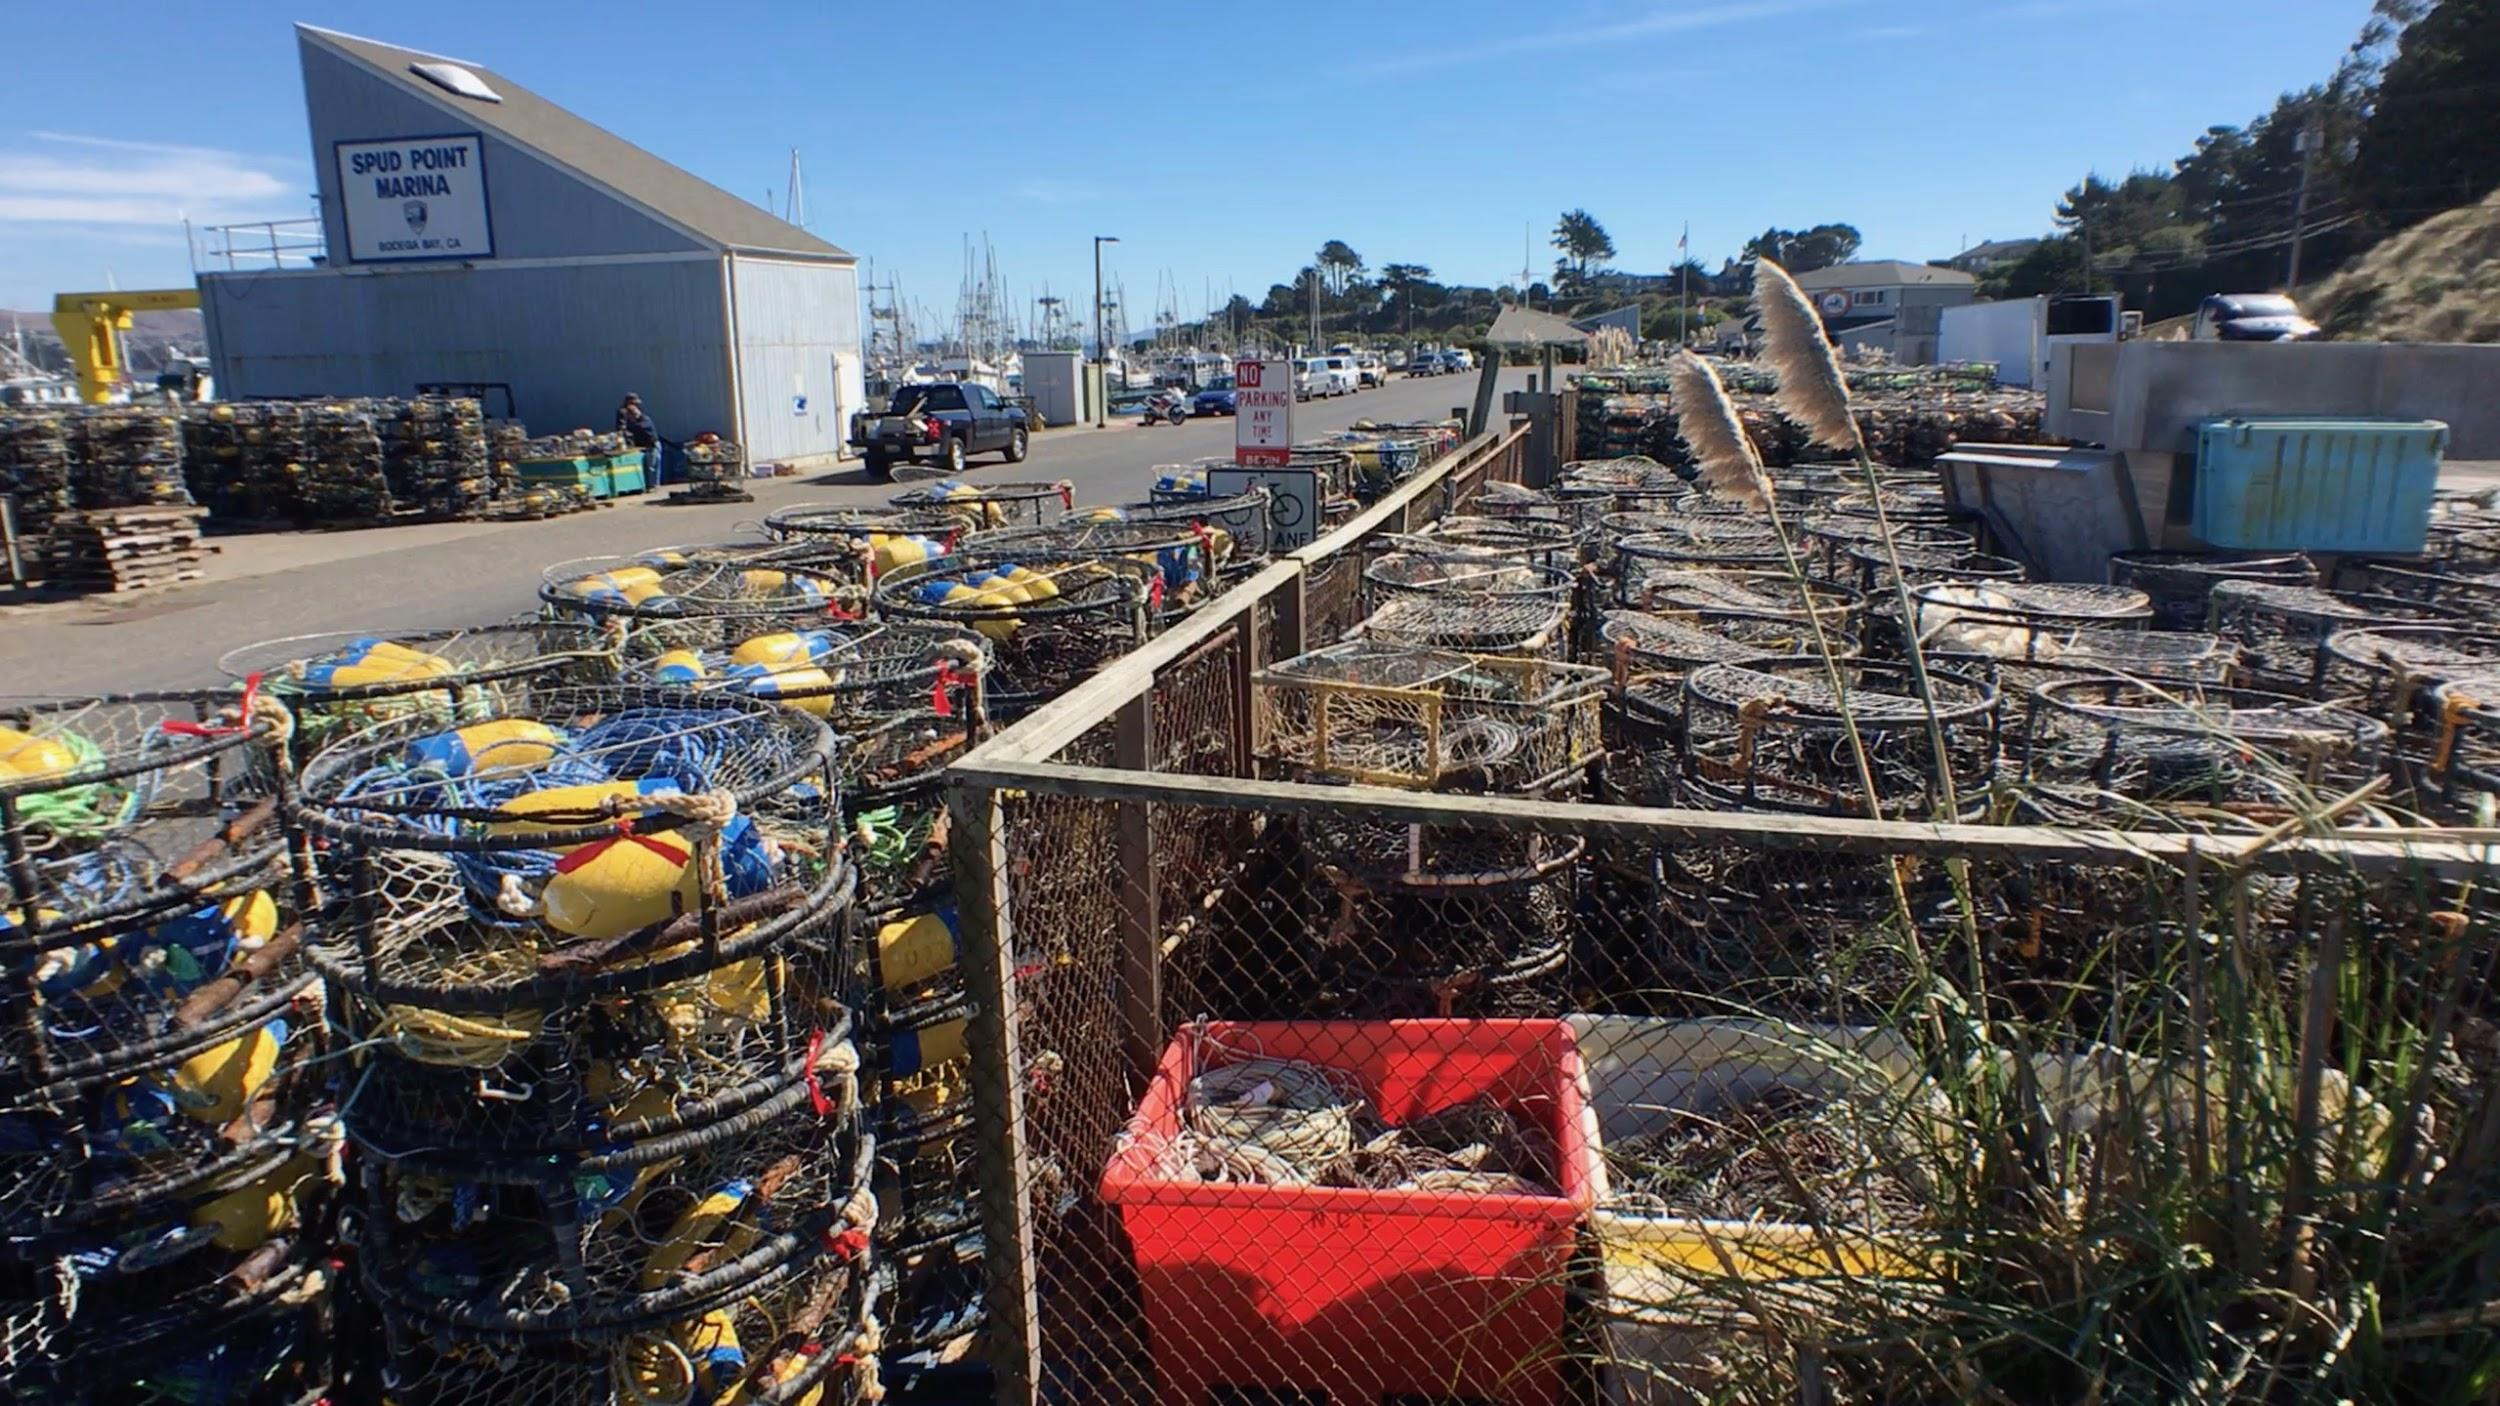 Heir Charley visits a crab fishery in Bodega Bay, CA, observing miles of crab pots.